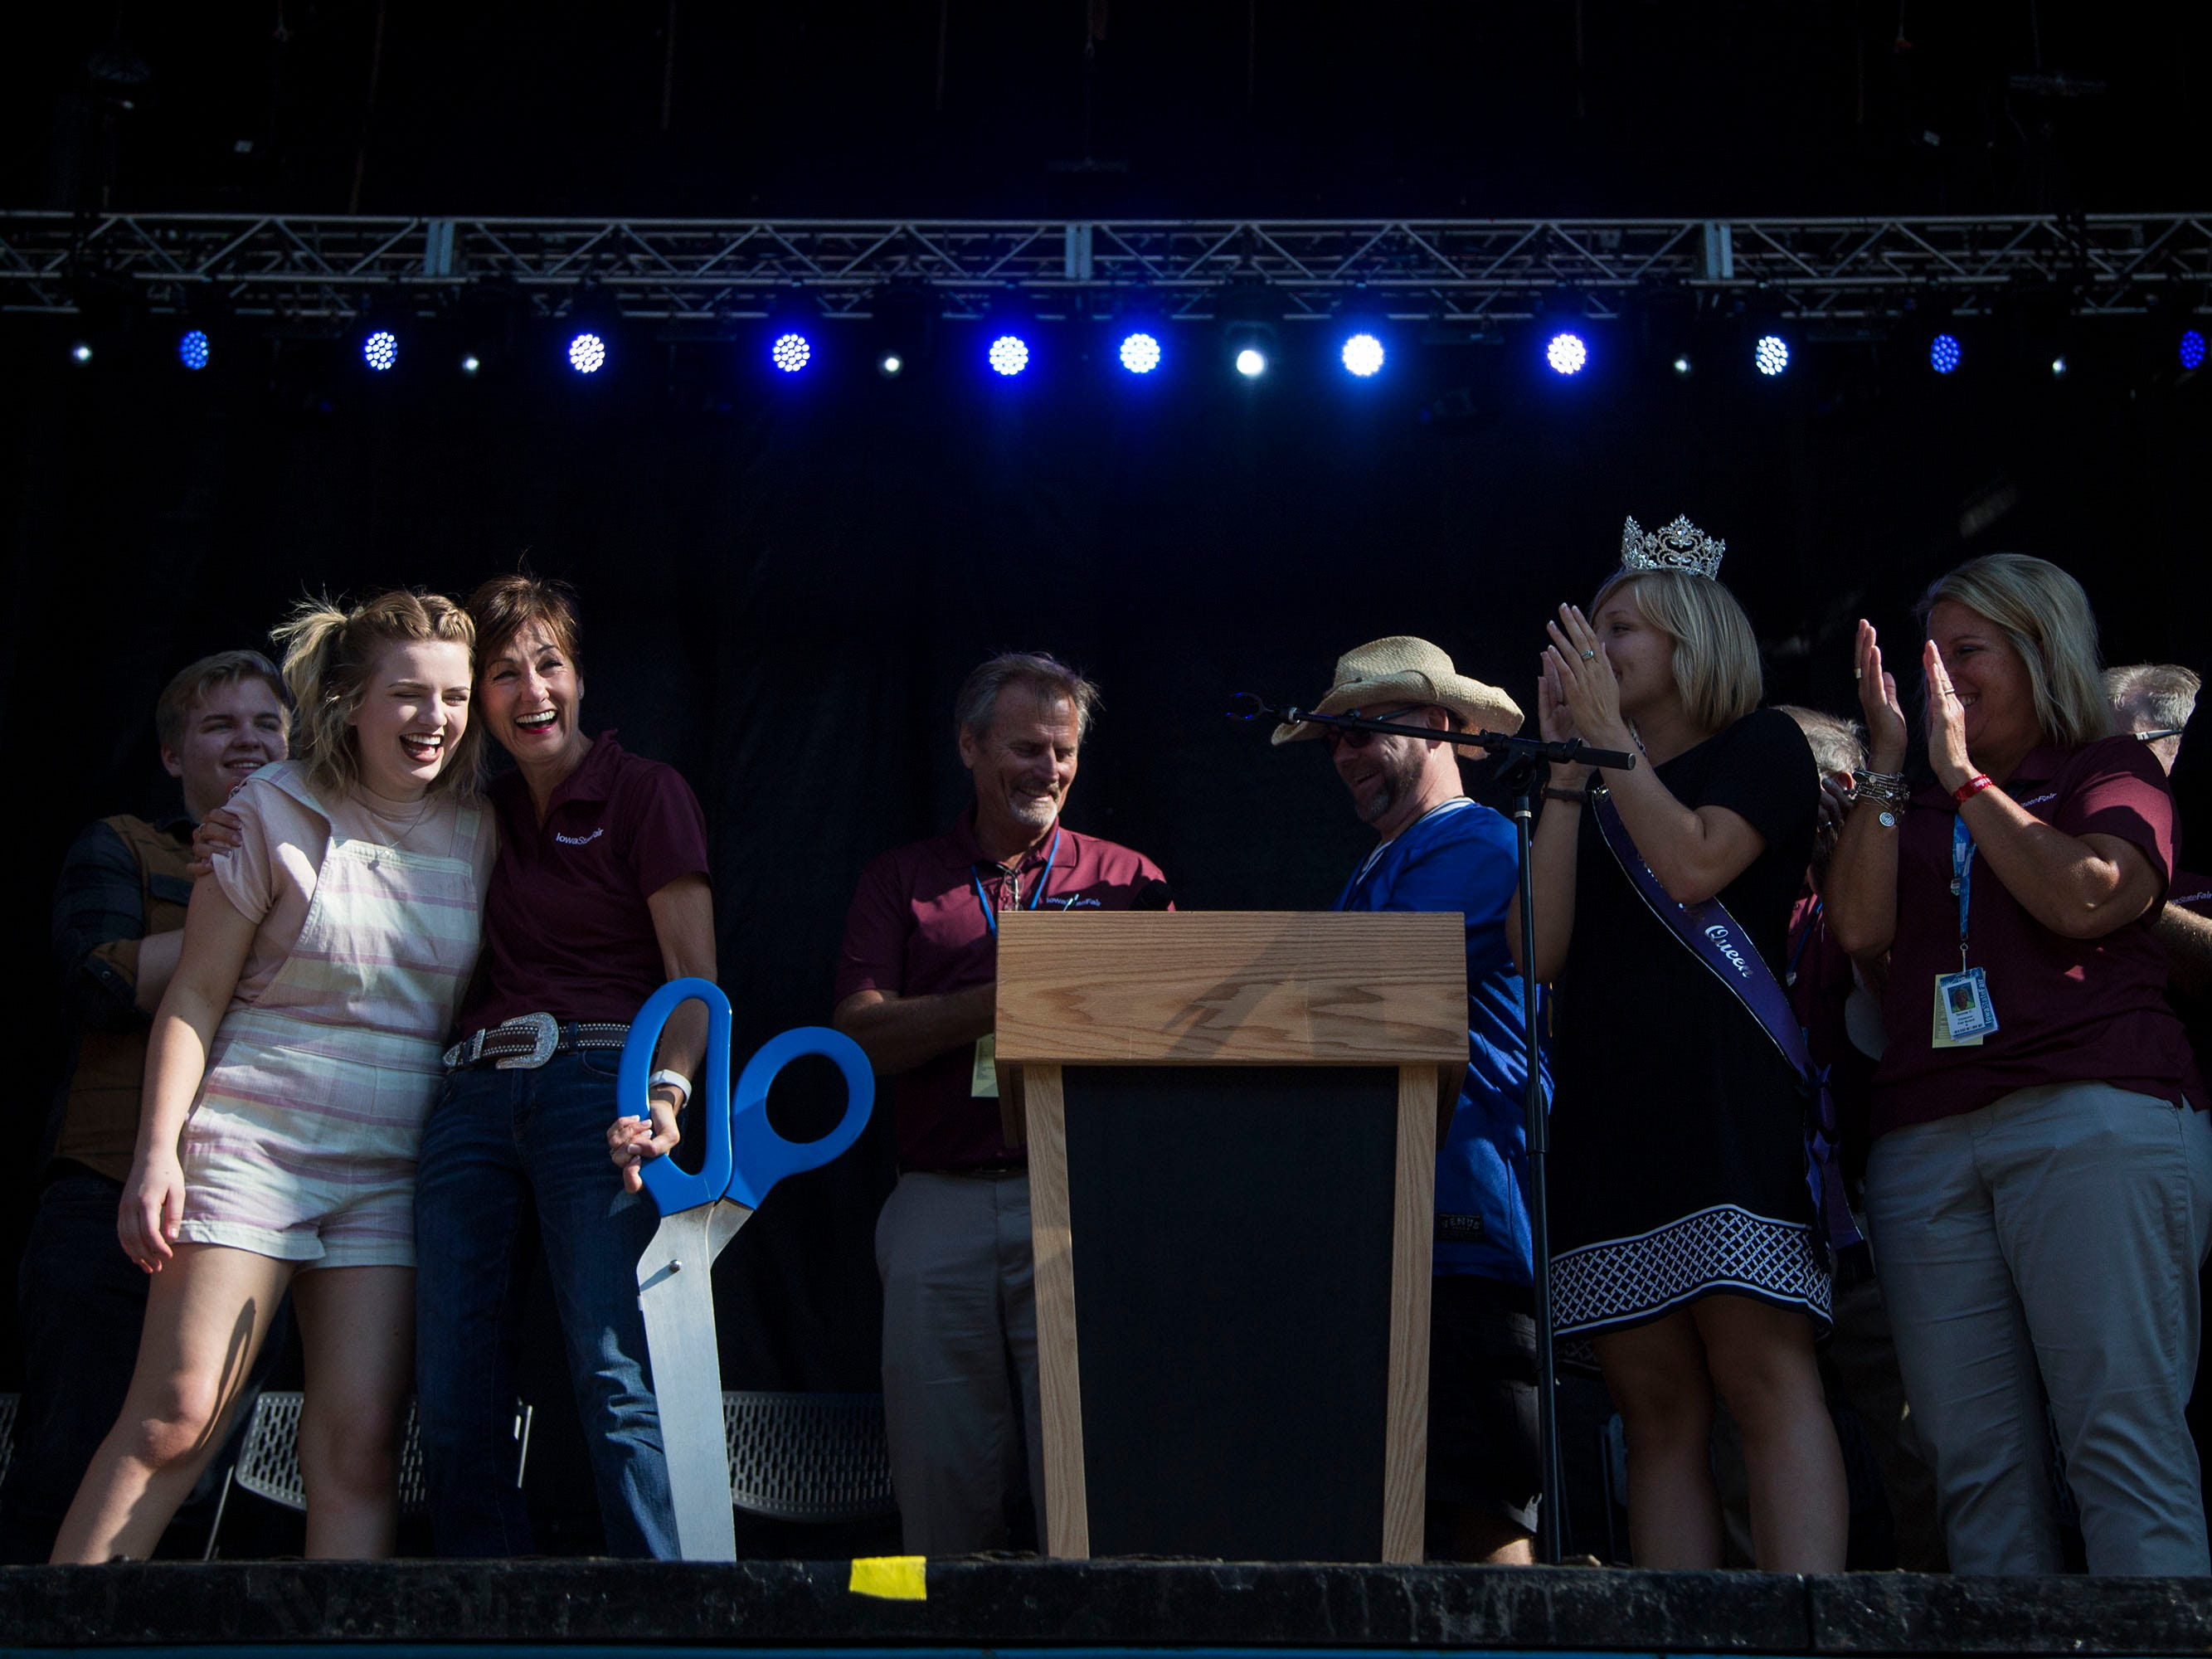 Iowa Governor Kim Reynolds and Maddie Poppe, winner of season 16 of American Idol and Iowa native, cut the ribbon of the updated Iowa State Fair grandstand during the opening ceremony for the state fair on Thursday, August 9, 2018, in Des Moines.